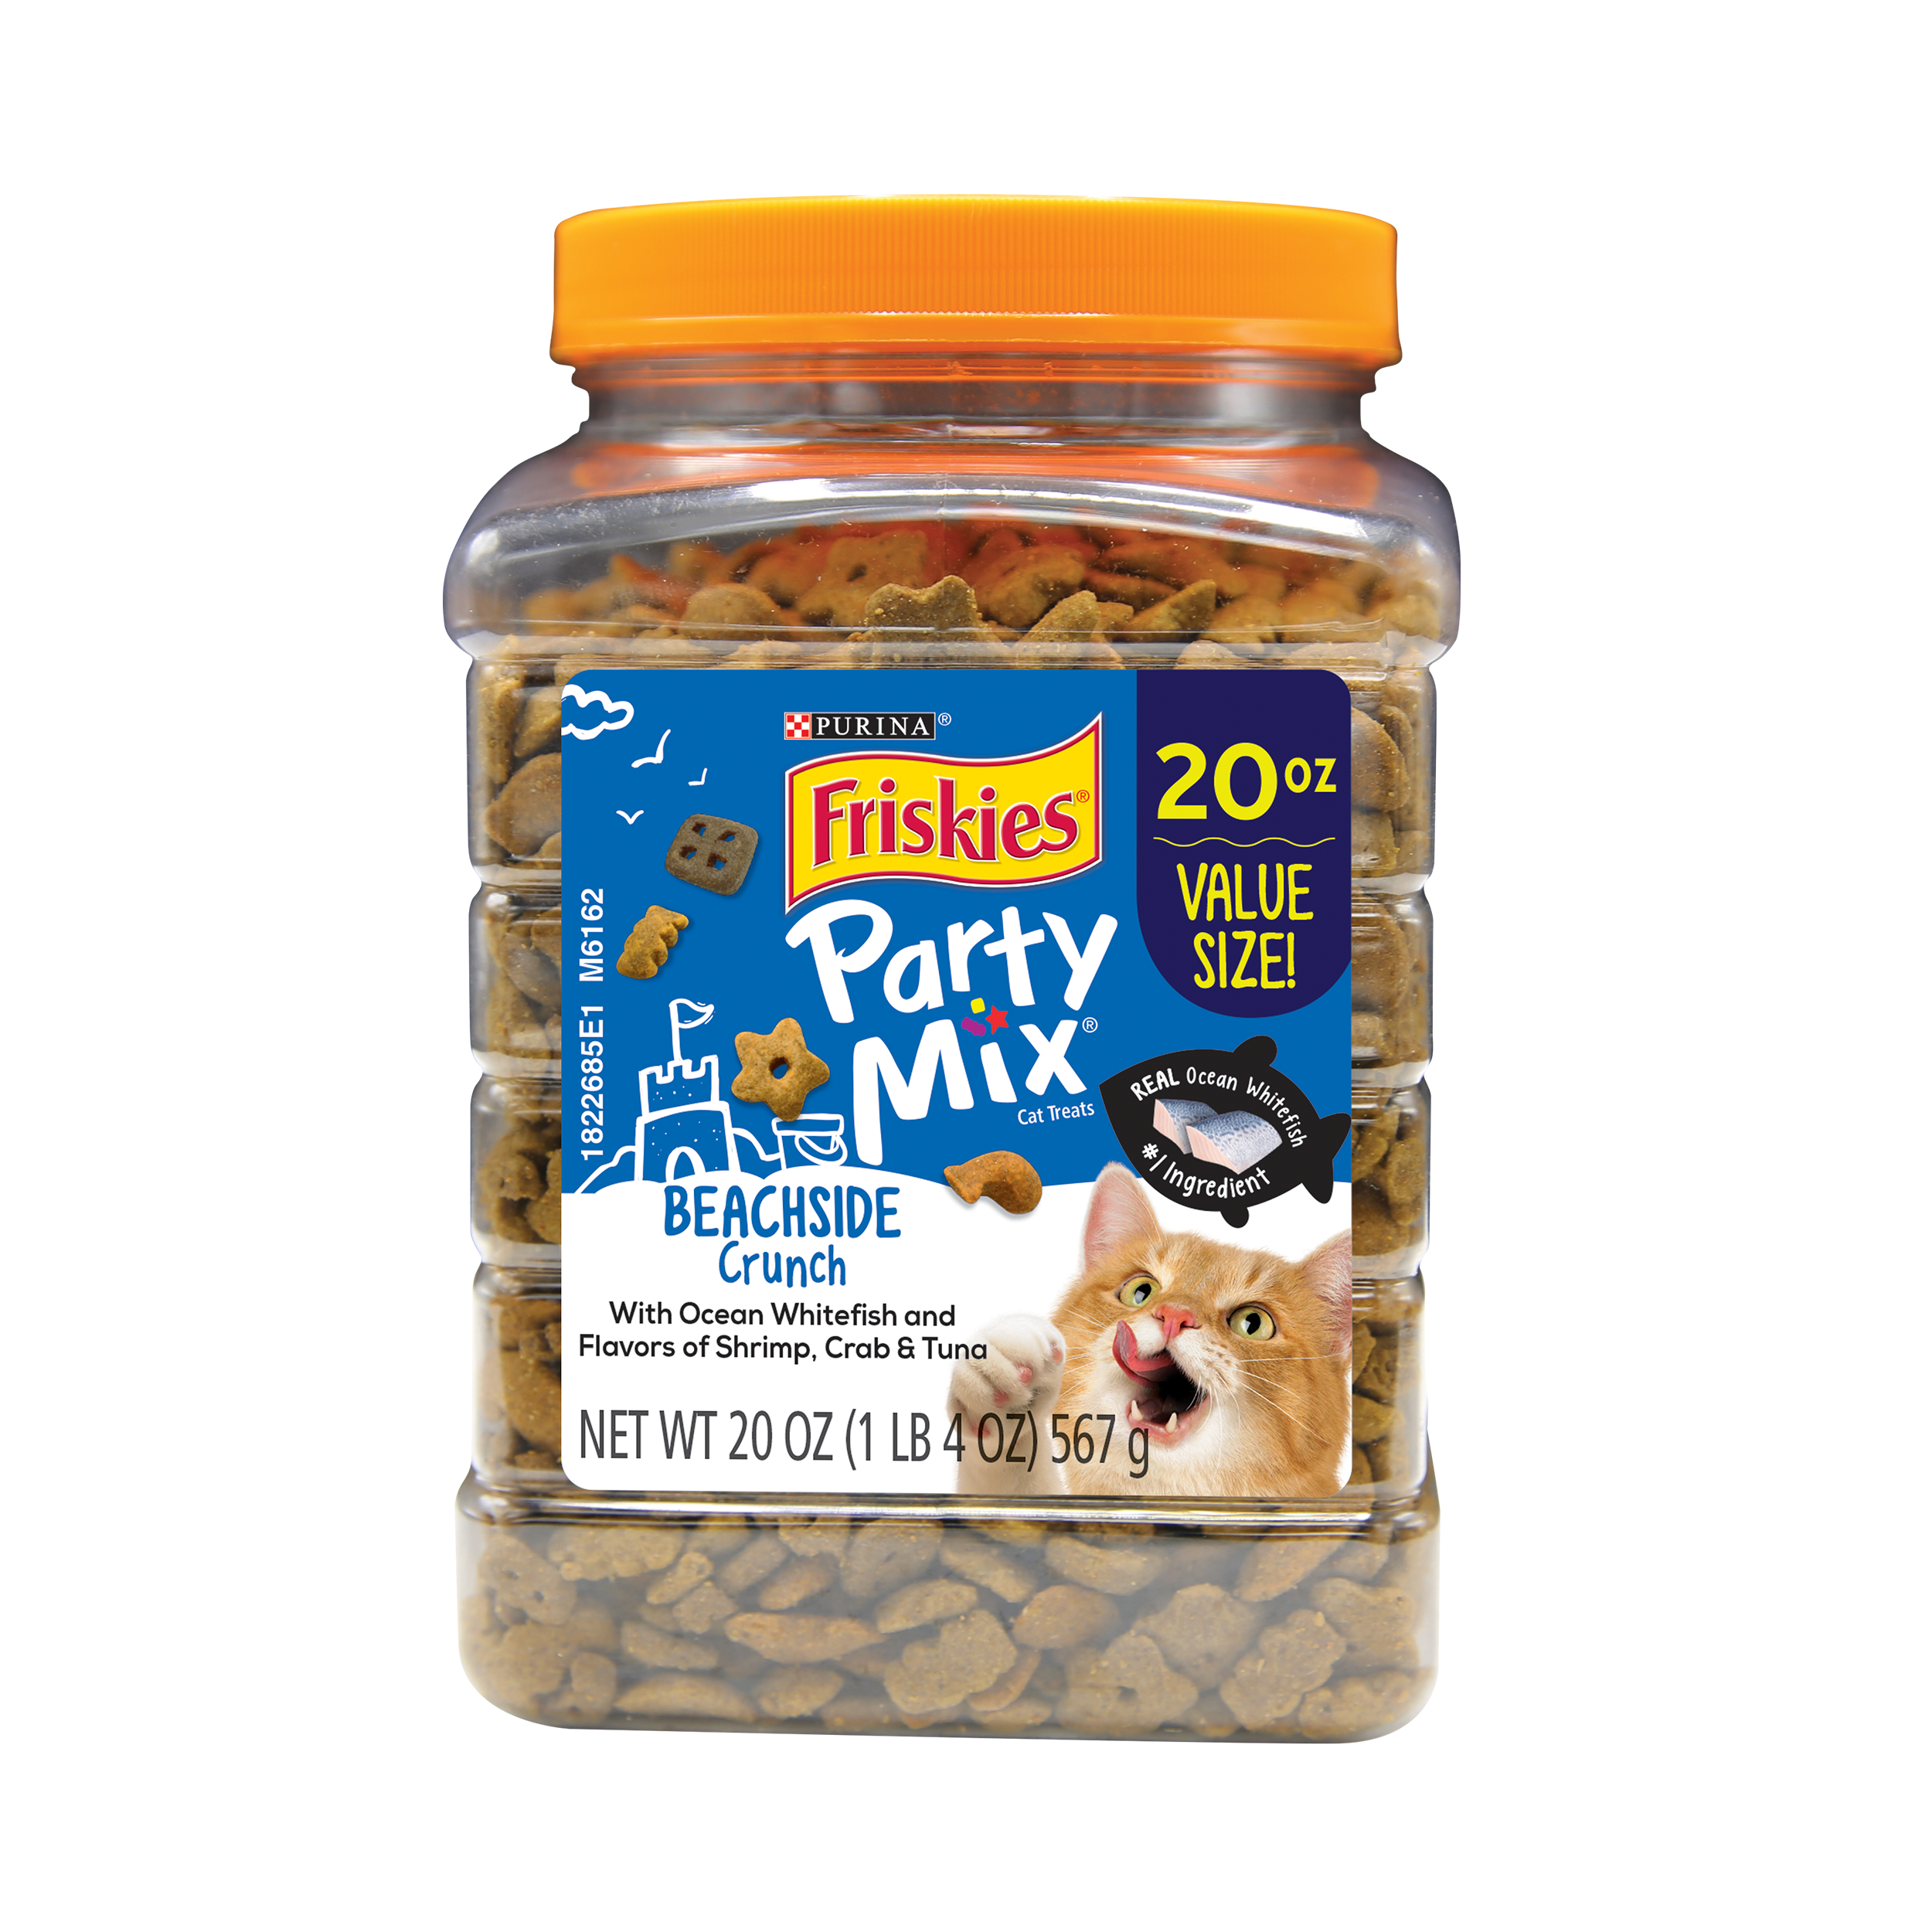 Purina Friskies Party Mix Beachside Crunch Adult Cat Treats, 20 oz. Canister